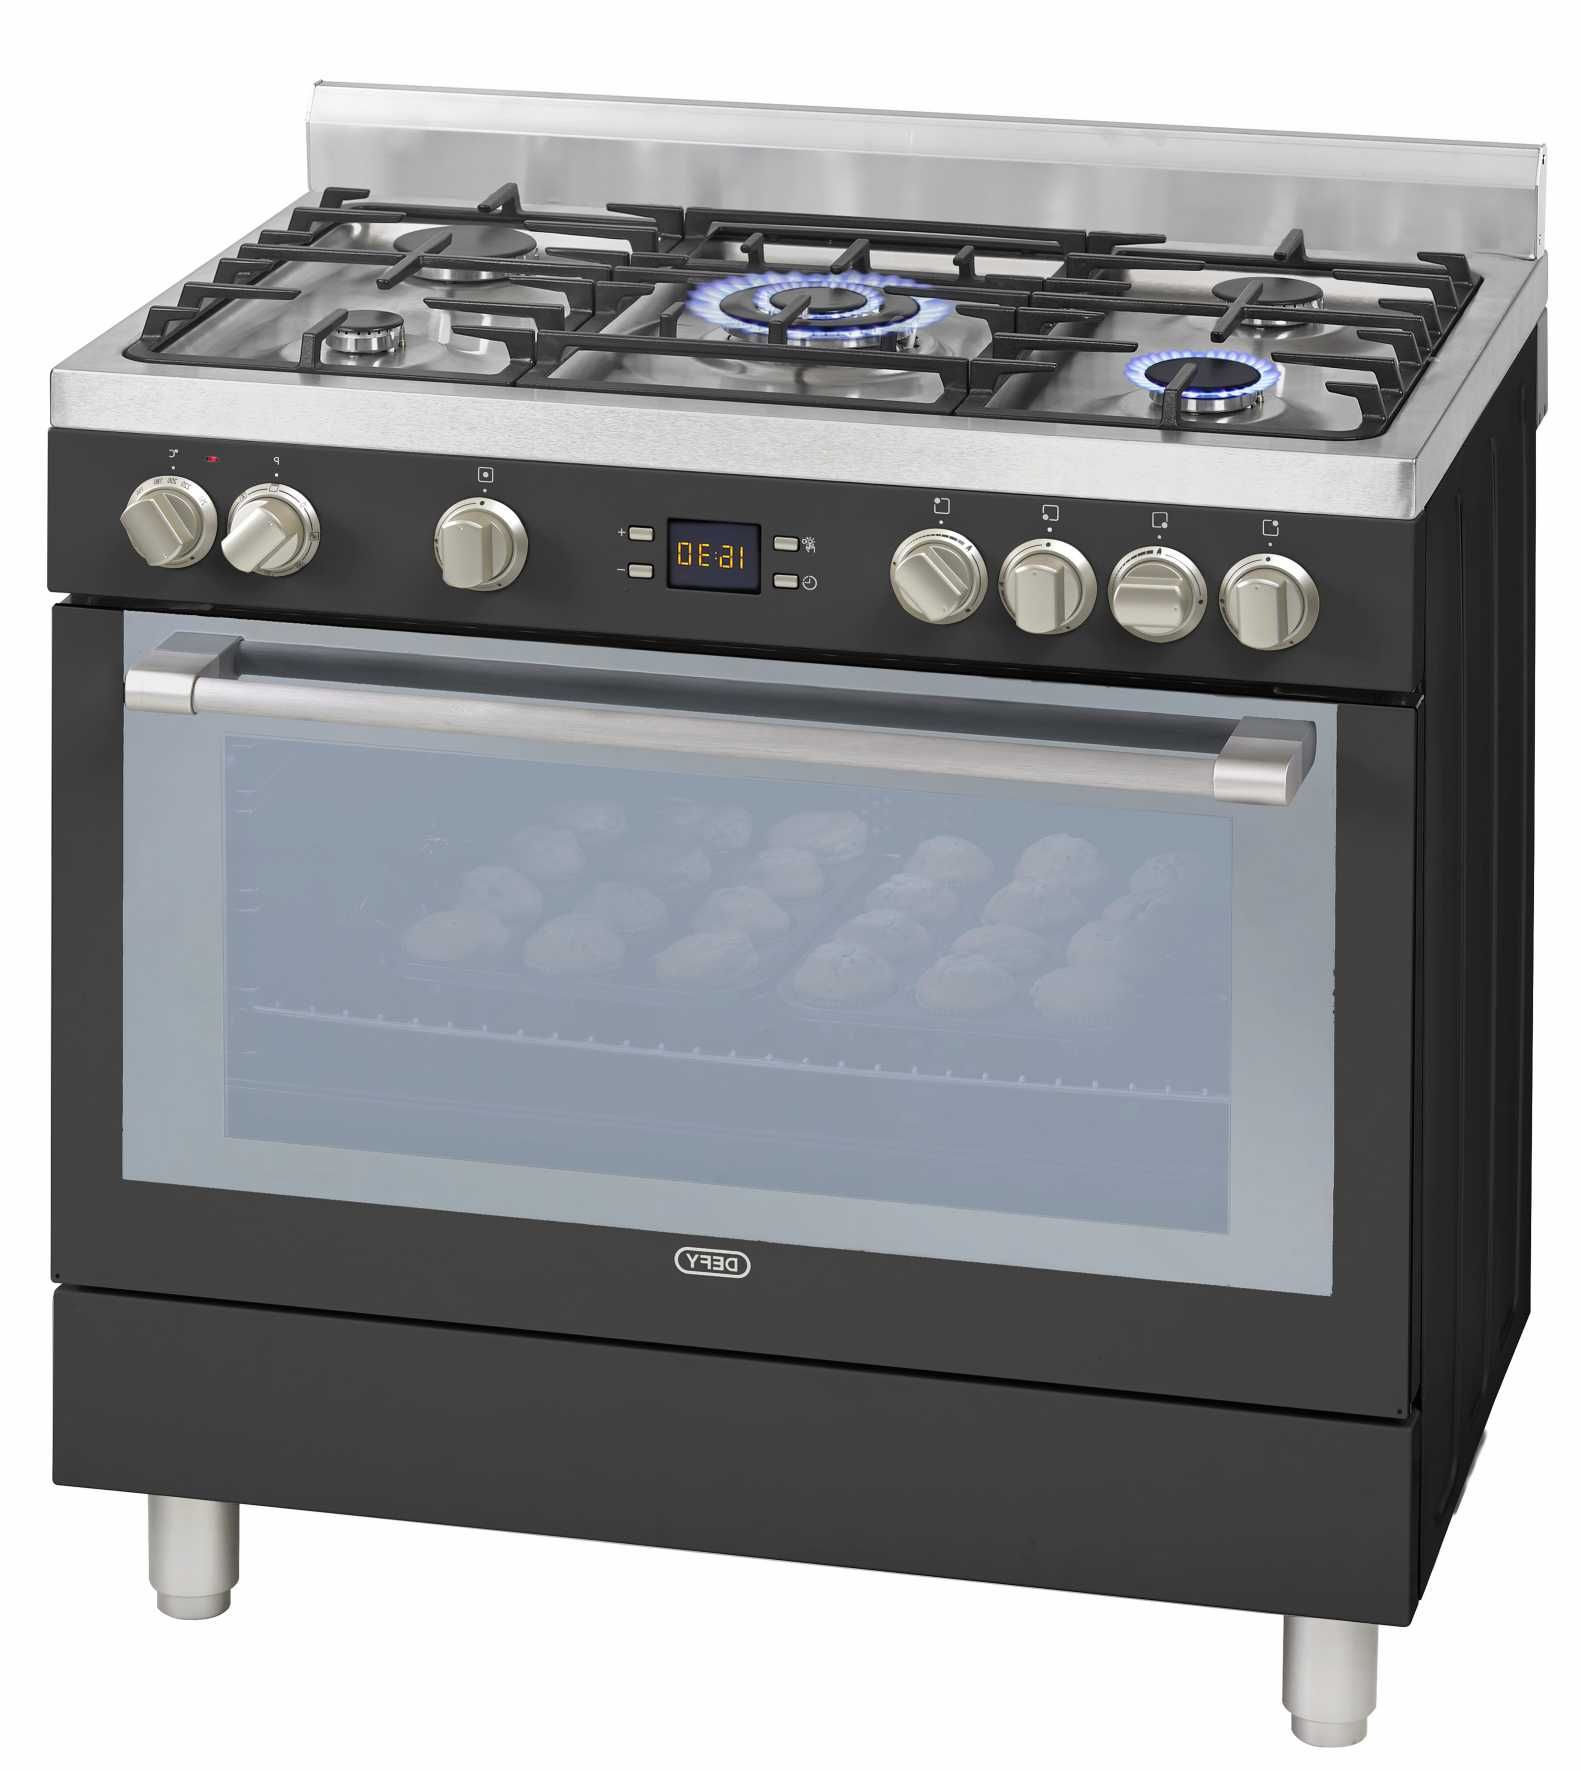 Electric kitchen stoves  stoves defy  Kitchen Stove Info  Pinterest  Stove Stove prices